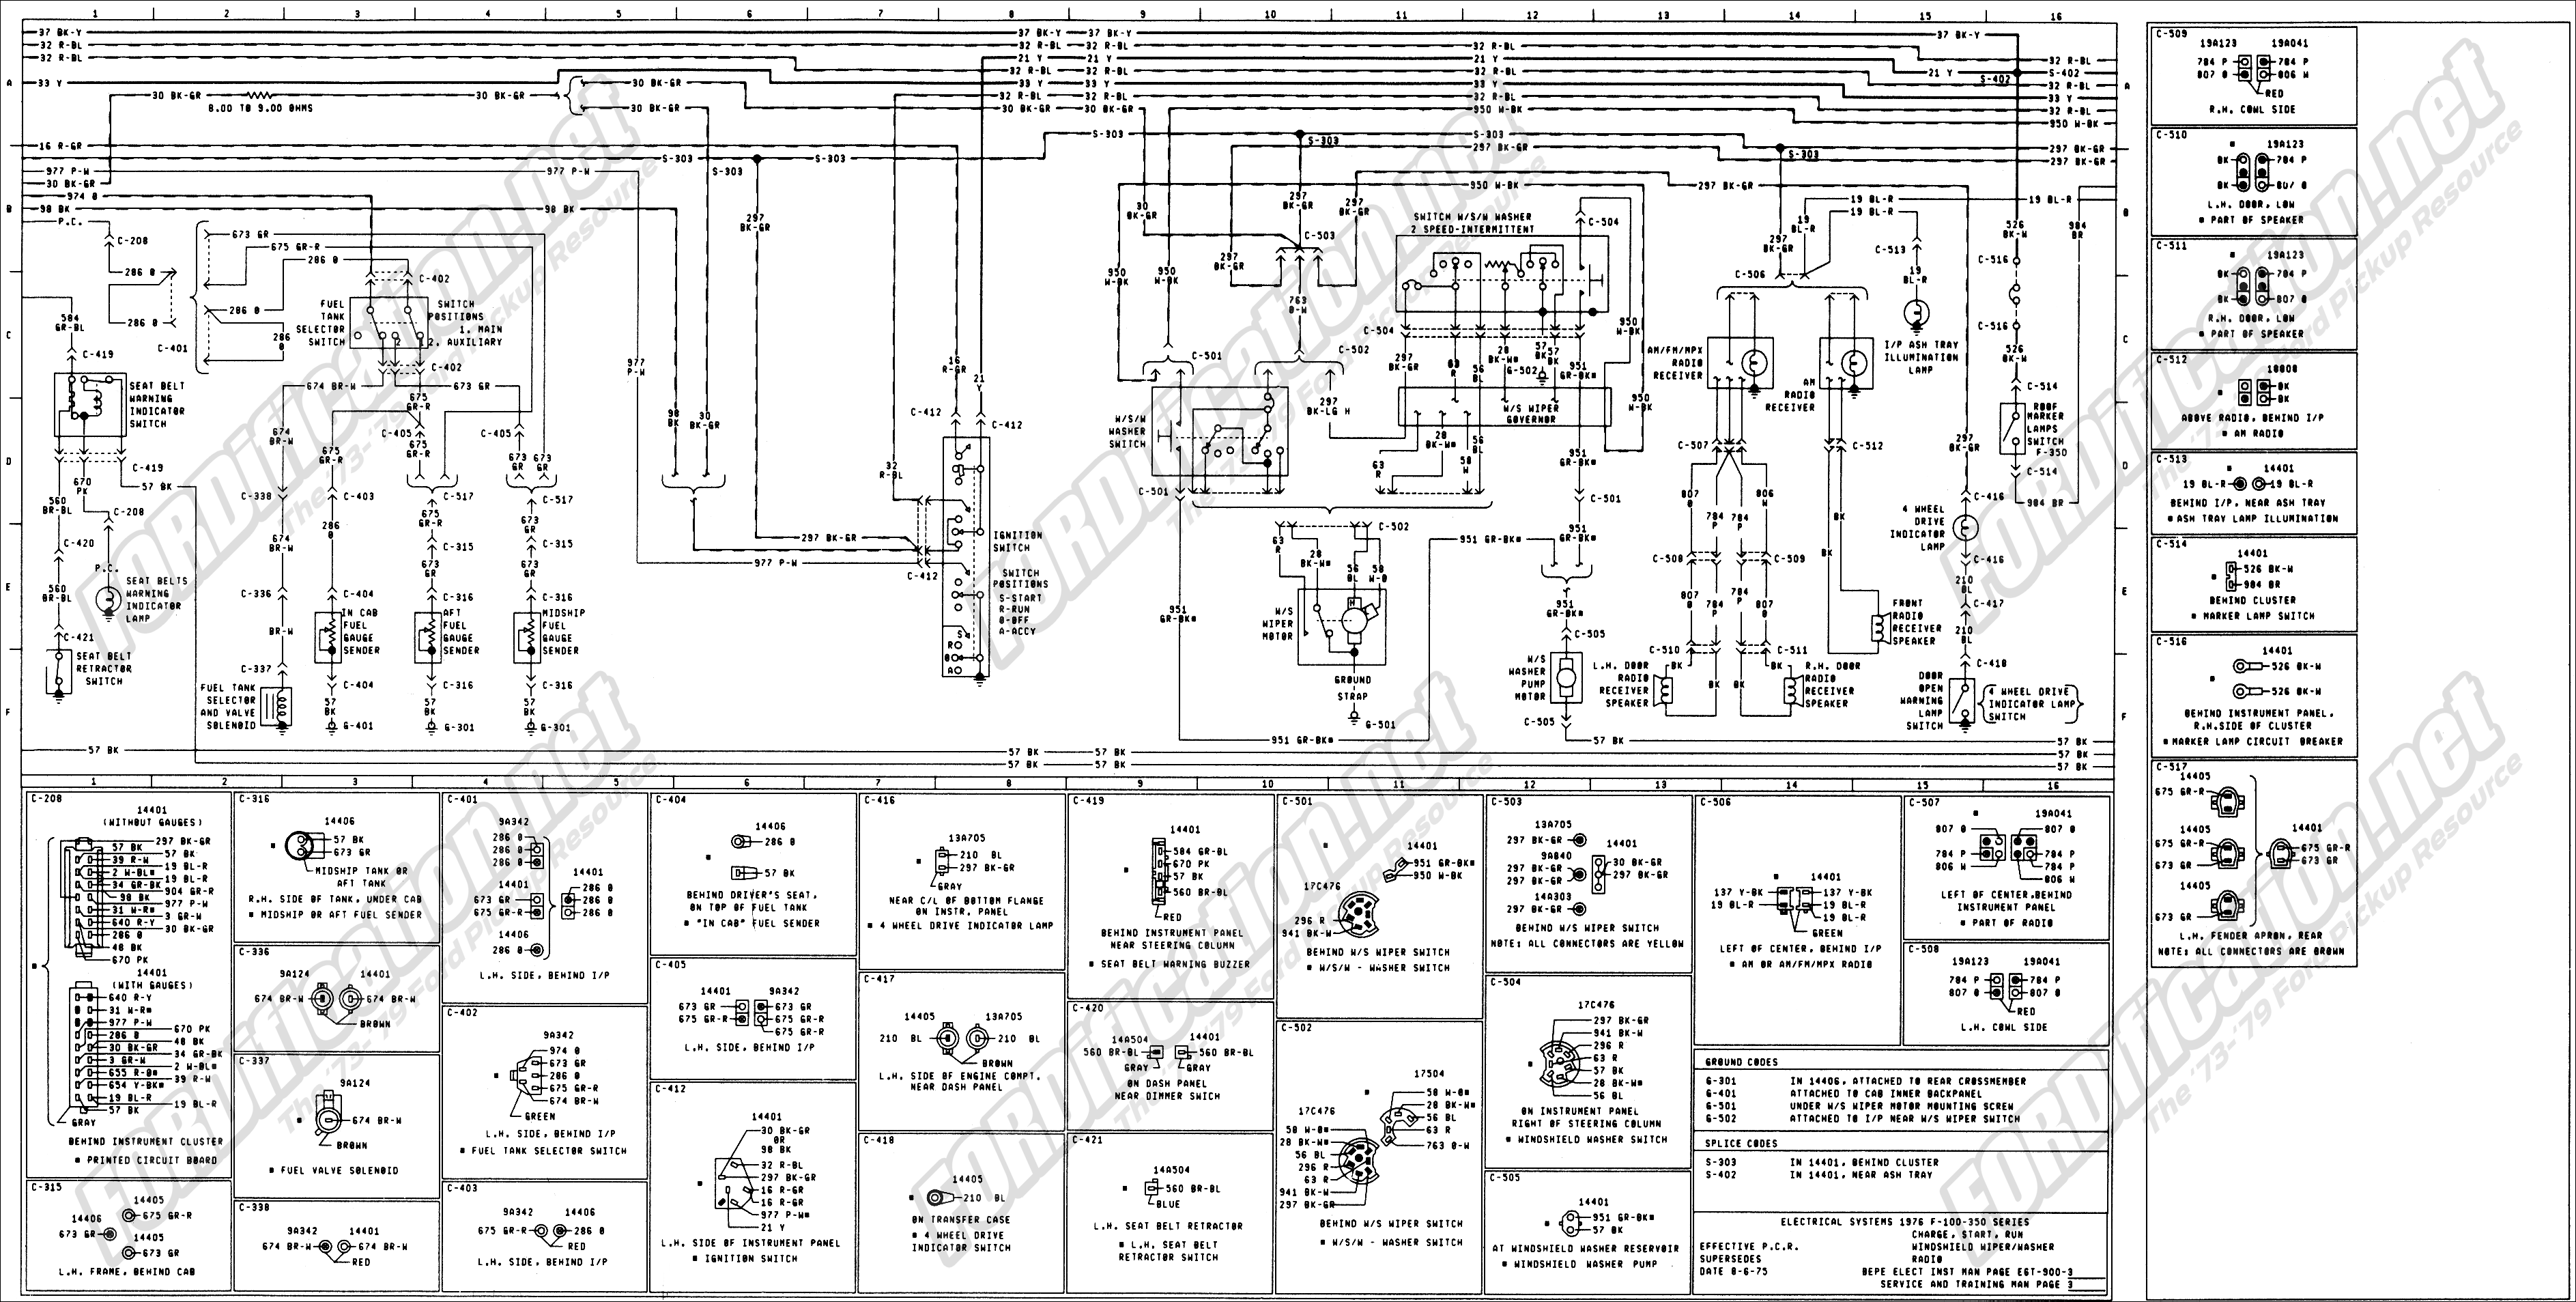 ford wiring diagram wiring diagram specialtiesford f 150 steering column diagram ford circuit diagrams 1 wiring1976 ford steering column wiring diagram